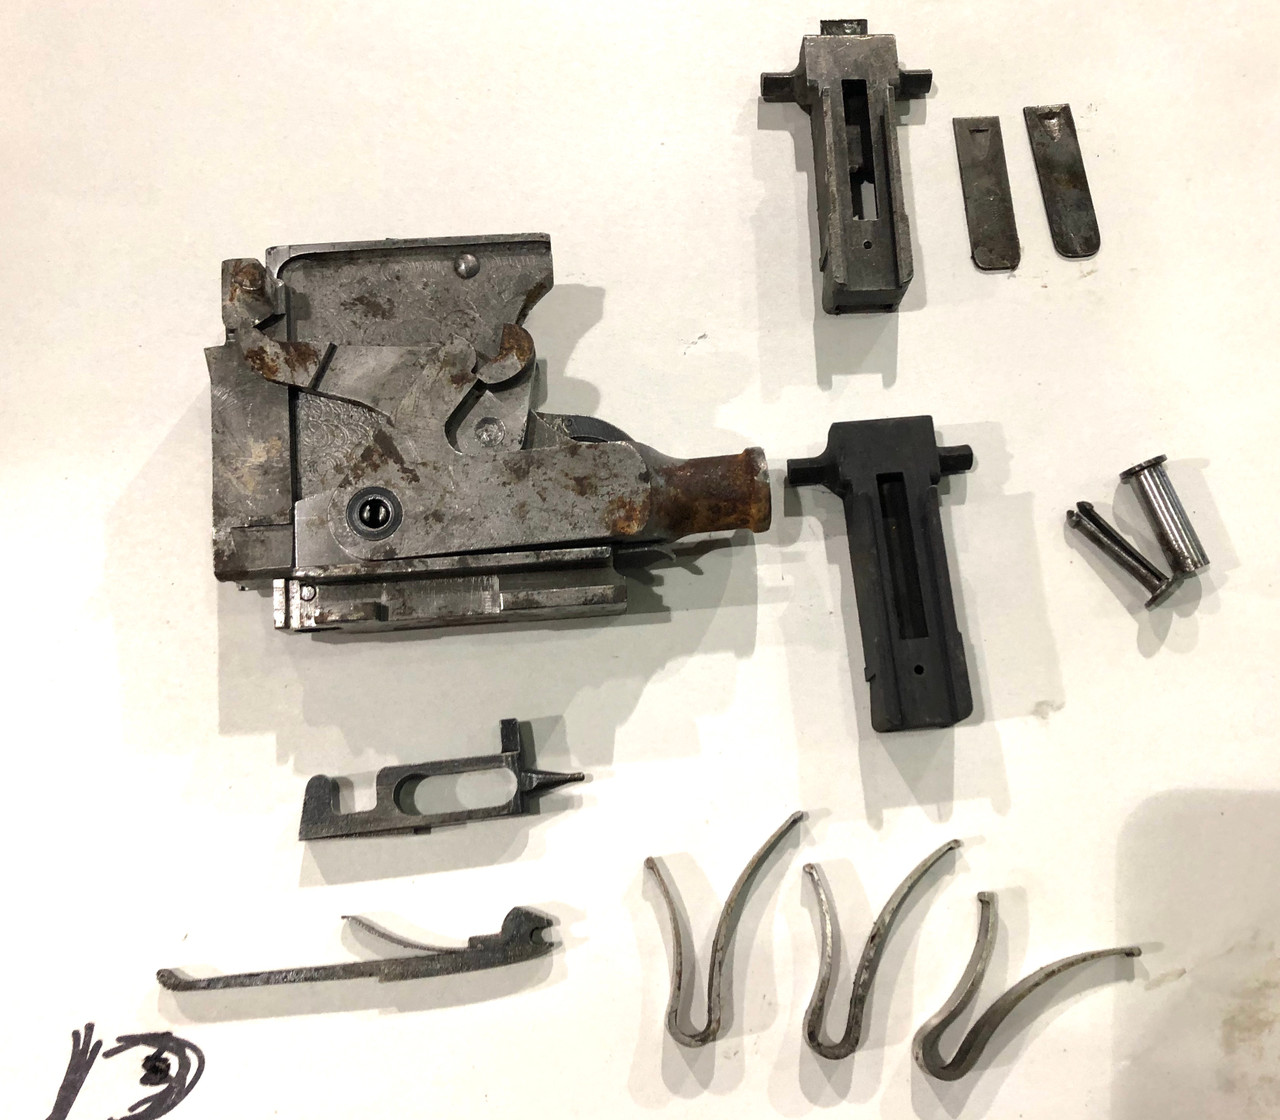 Vickers Lot 201009-13:  Lock Assembly (rusty) with extra parts